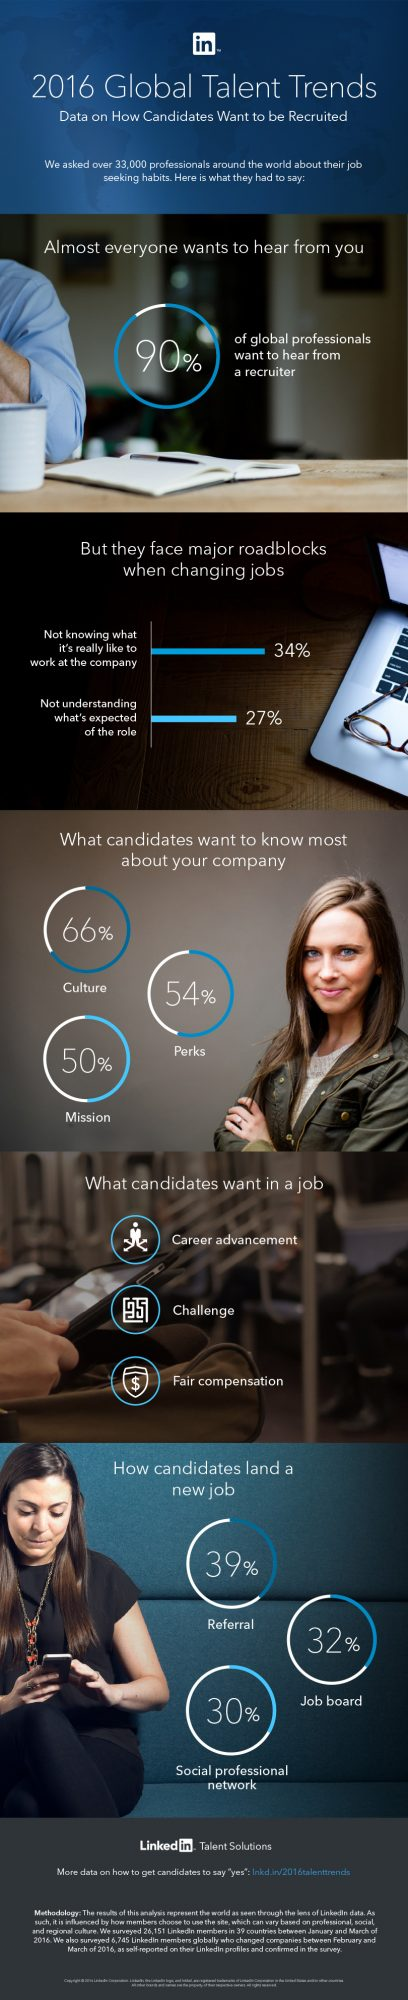 LinkedIn 2016 talent trends infographic